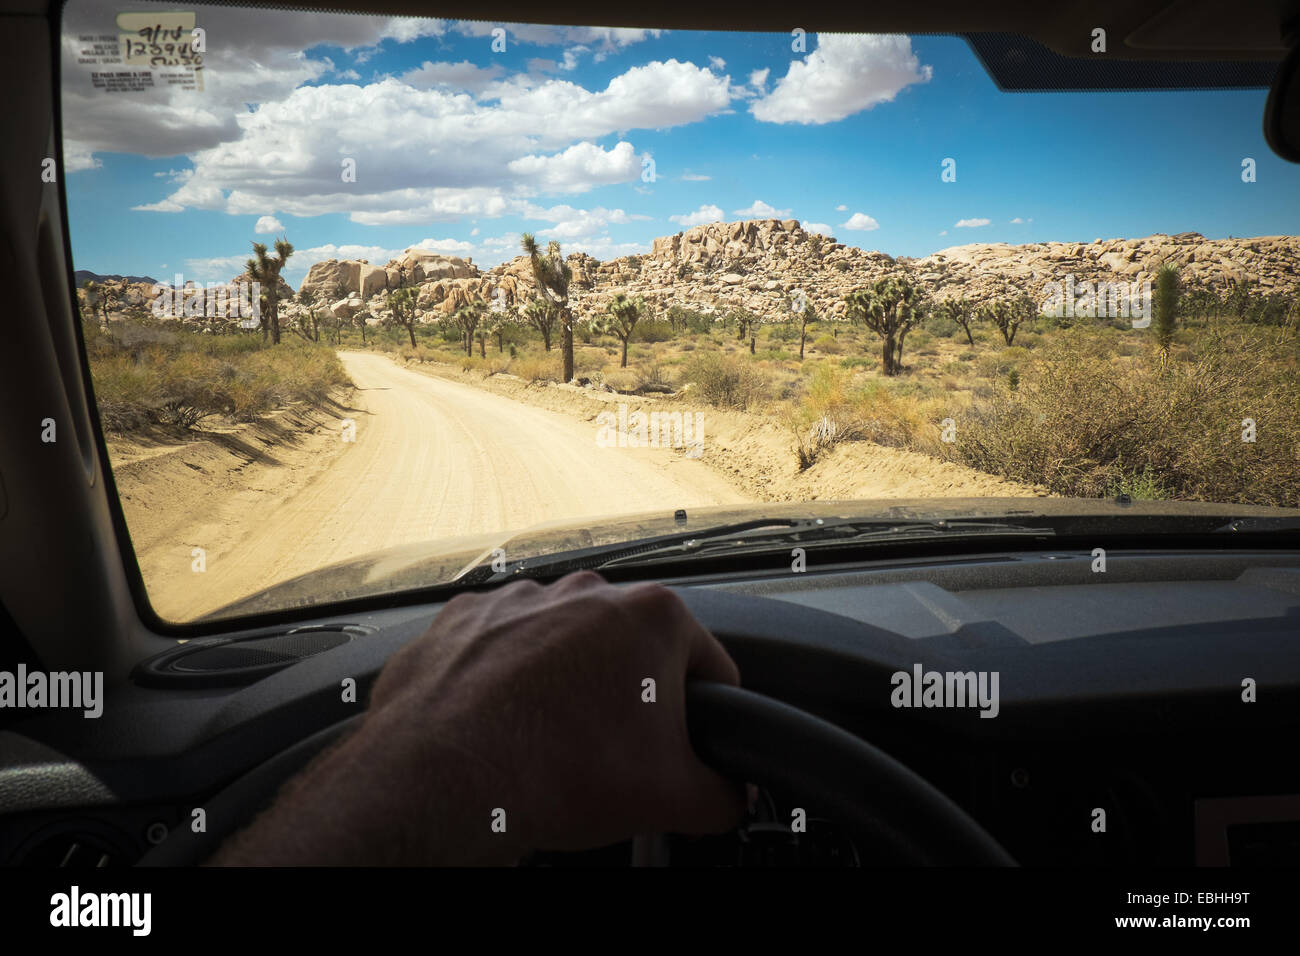 Des Fahrers Hand am Rad des Autos, Joshua Tree Nationalpark, Kalifornien, USA Stockbild